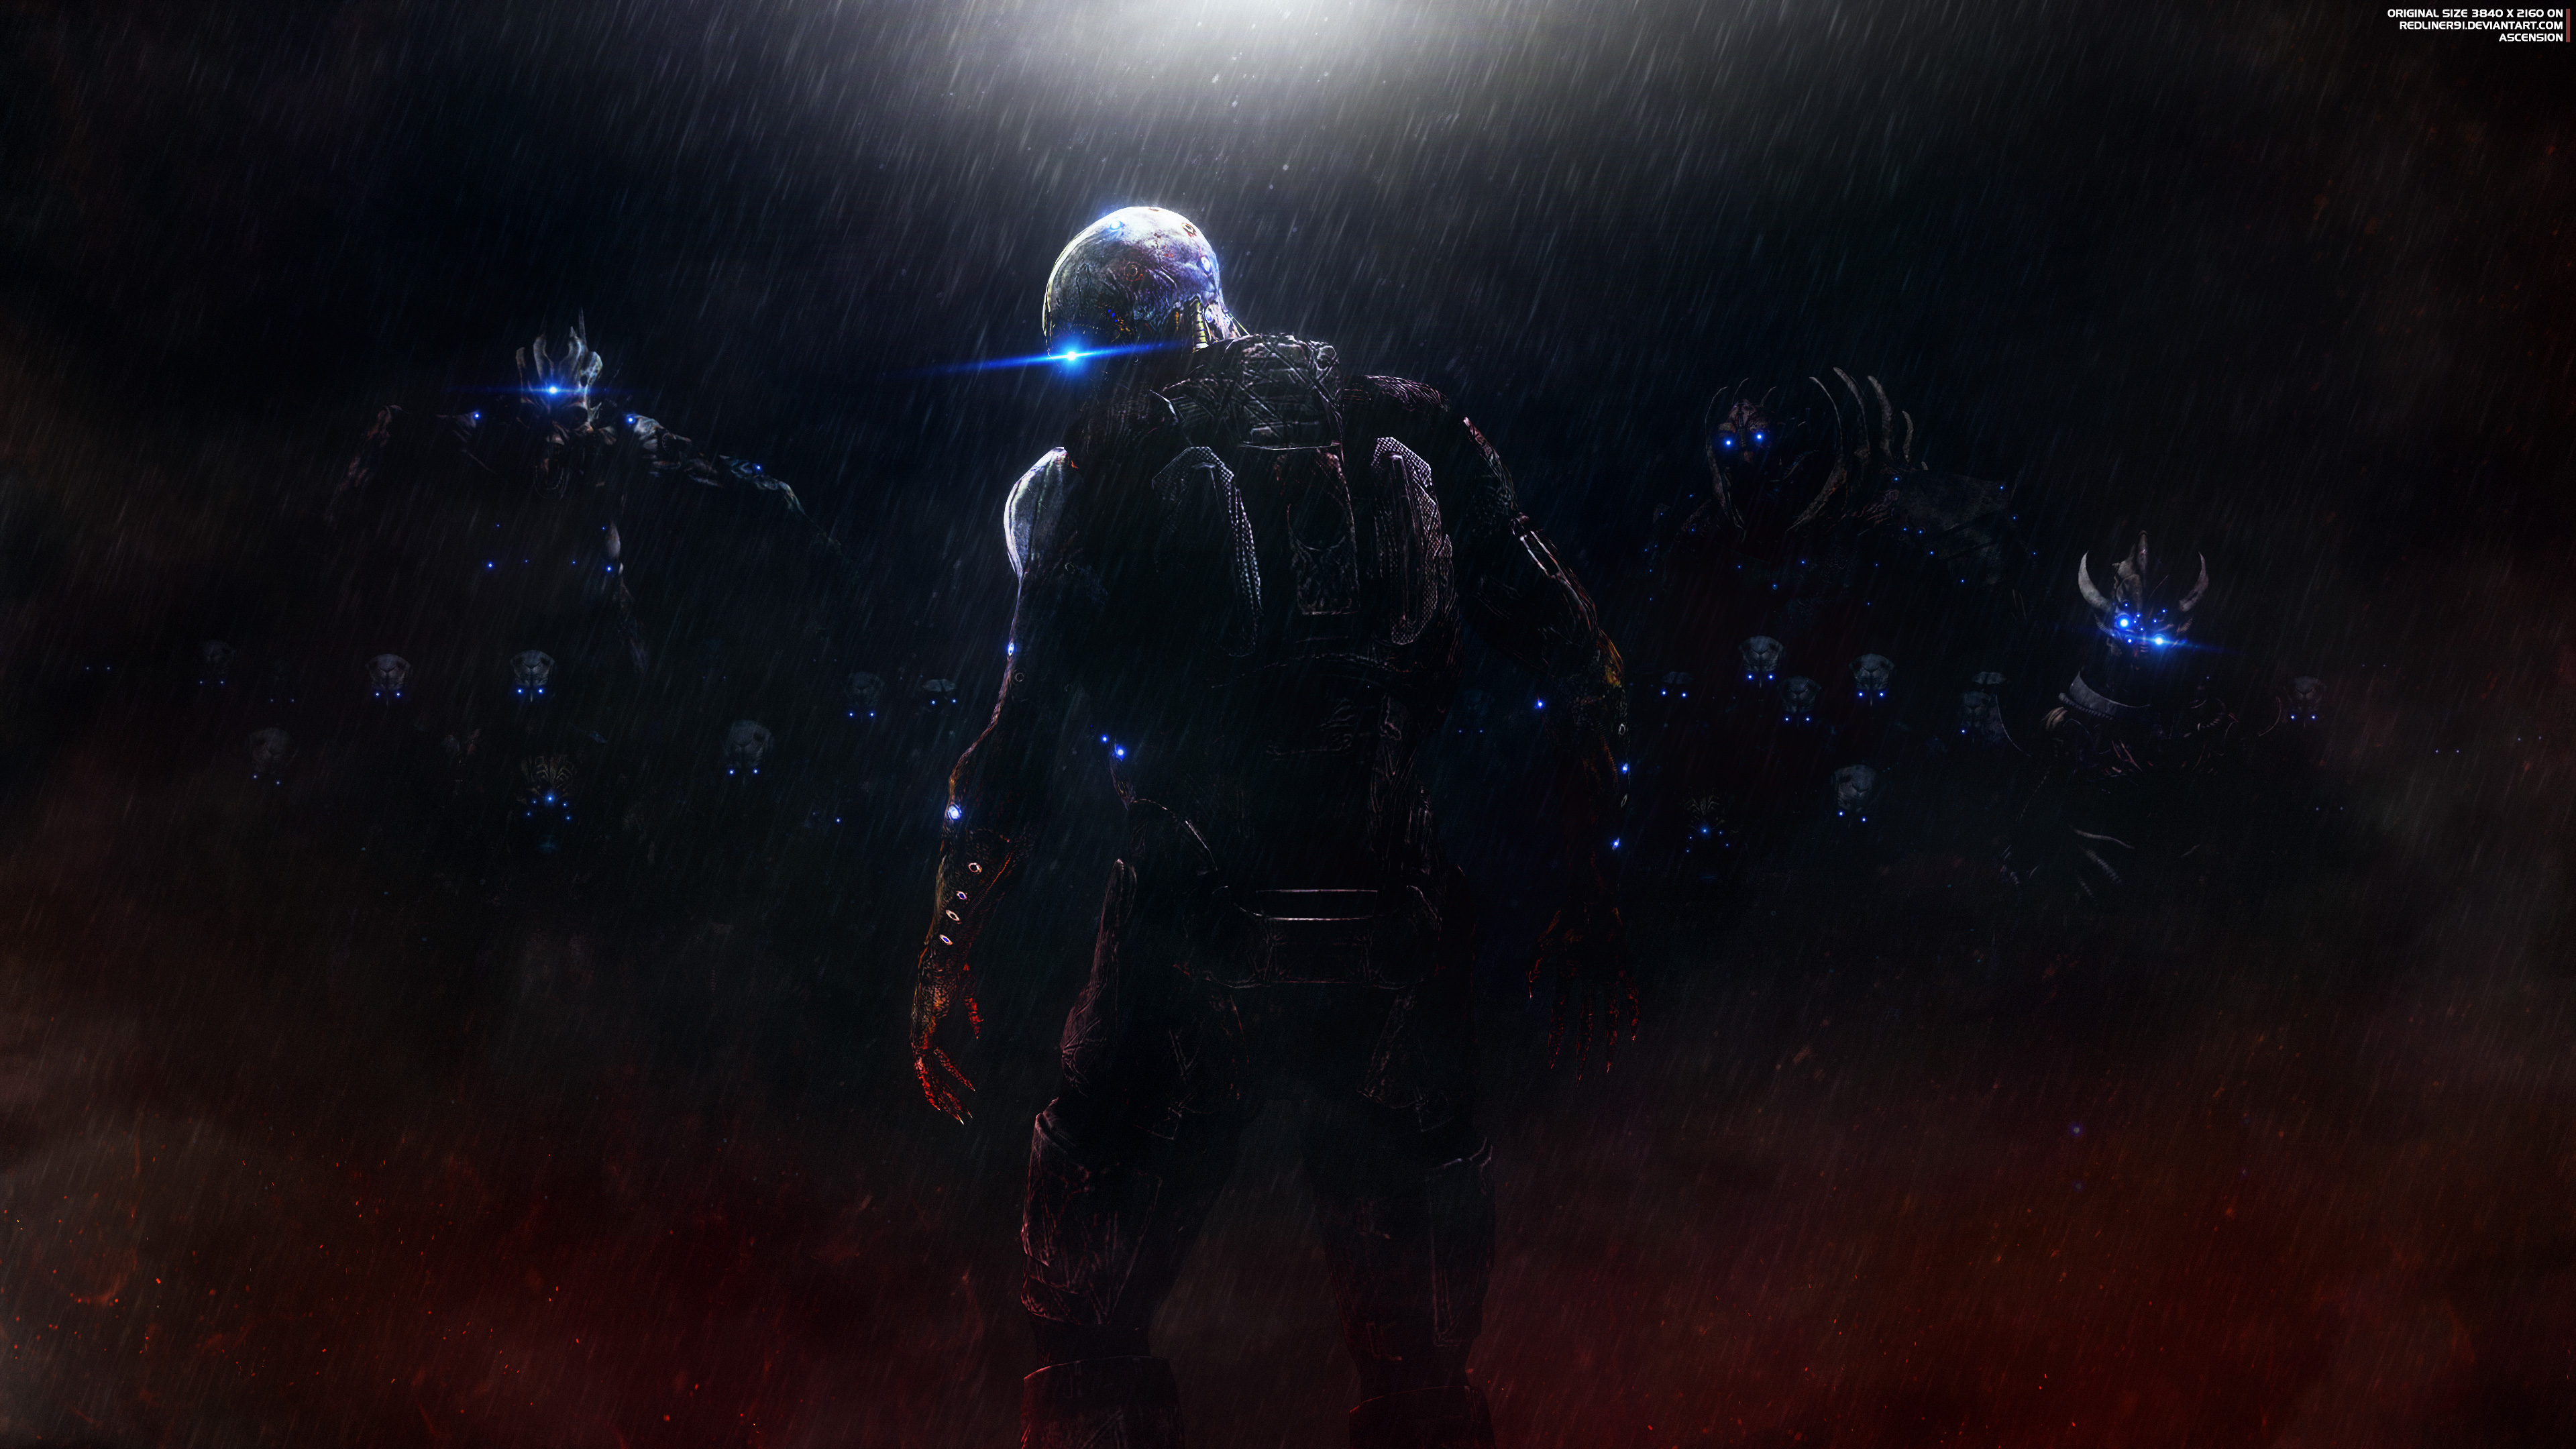 Mass Effect Trilogy 4K, HD Games, 4k Wallpapers, Images ...